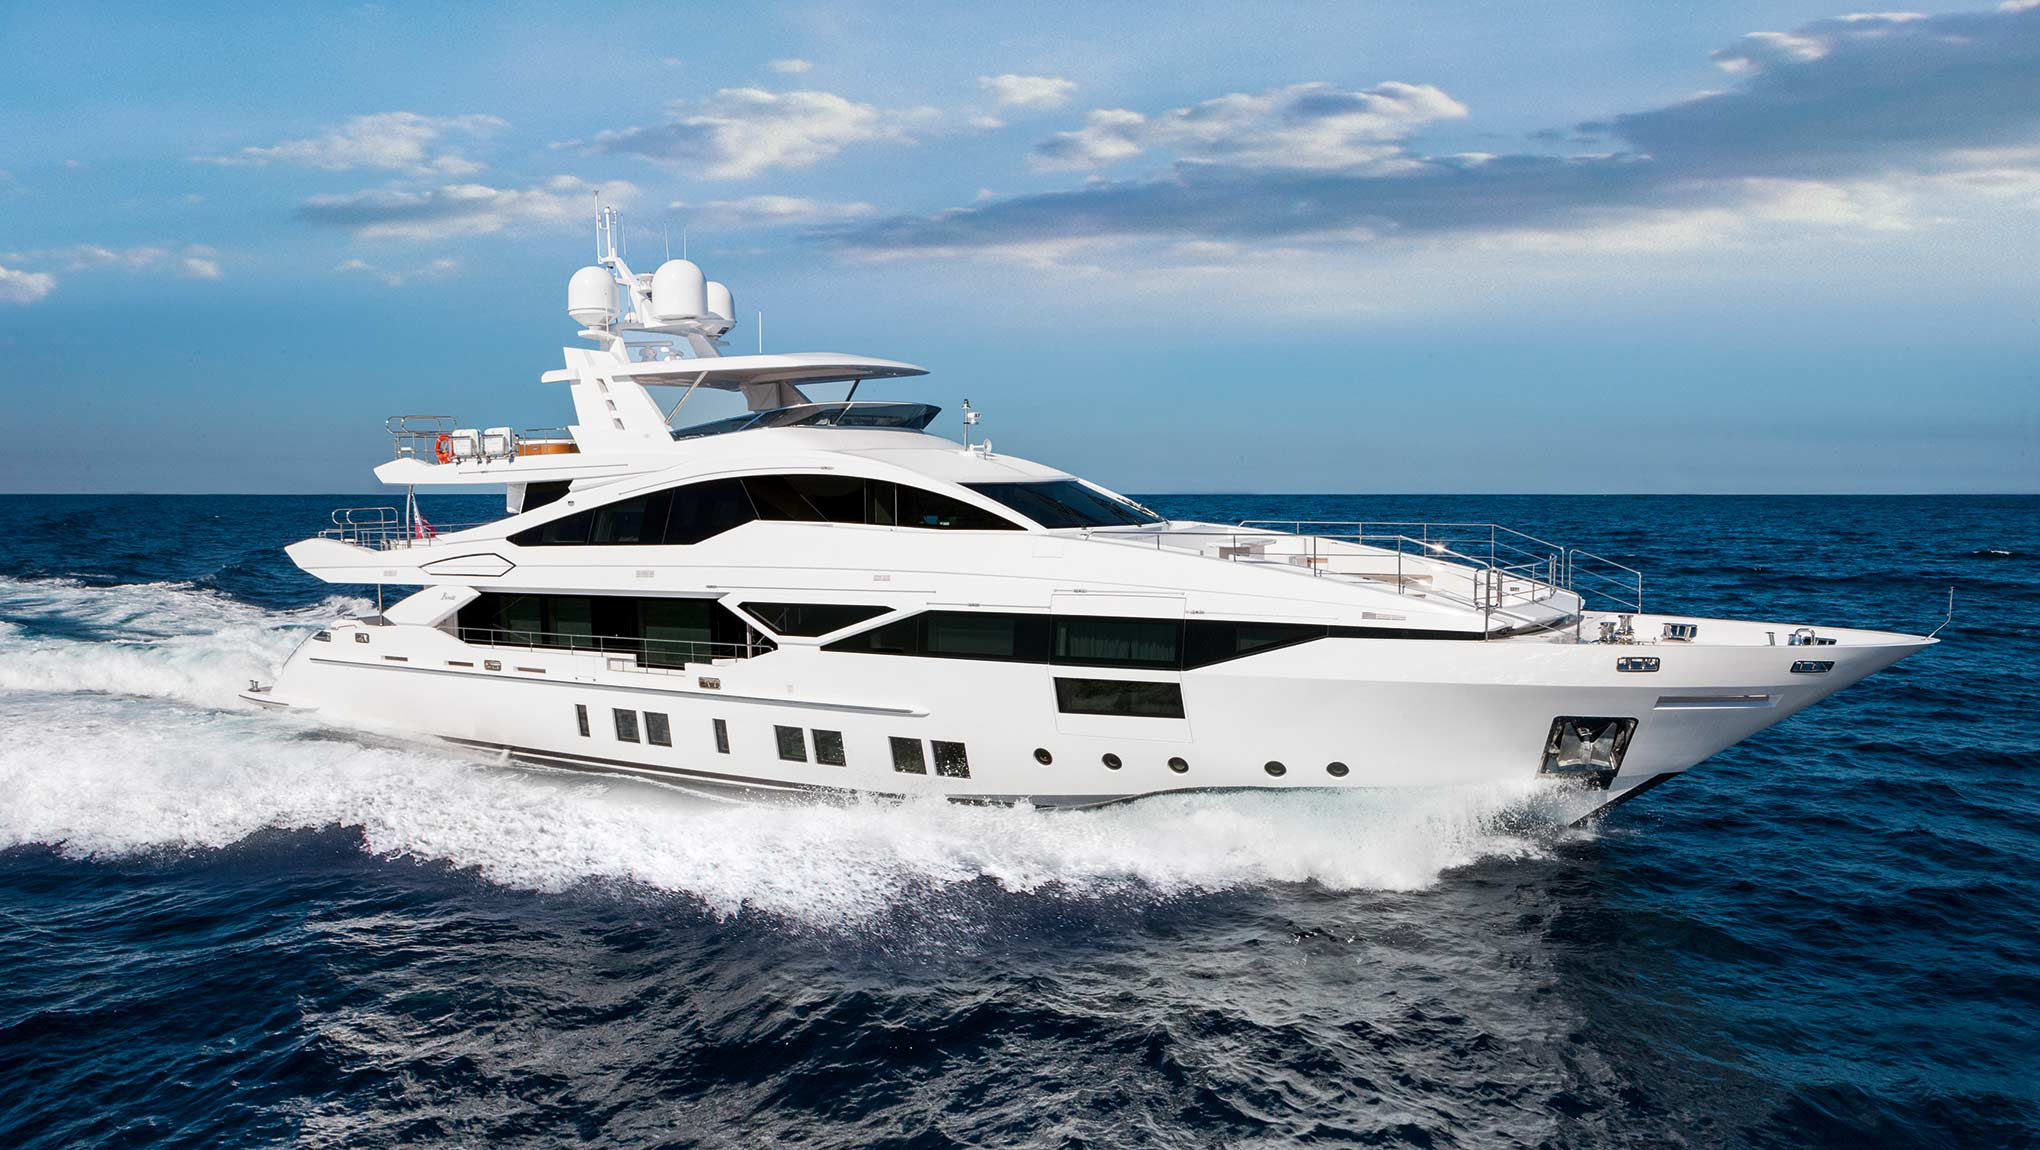 Luxury Yacht for sale €21,100,000